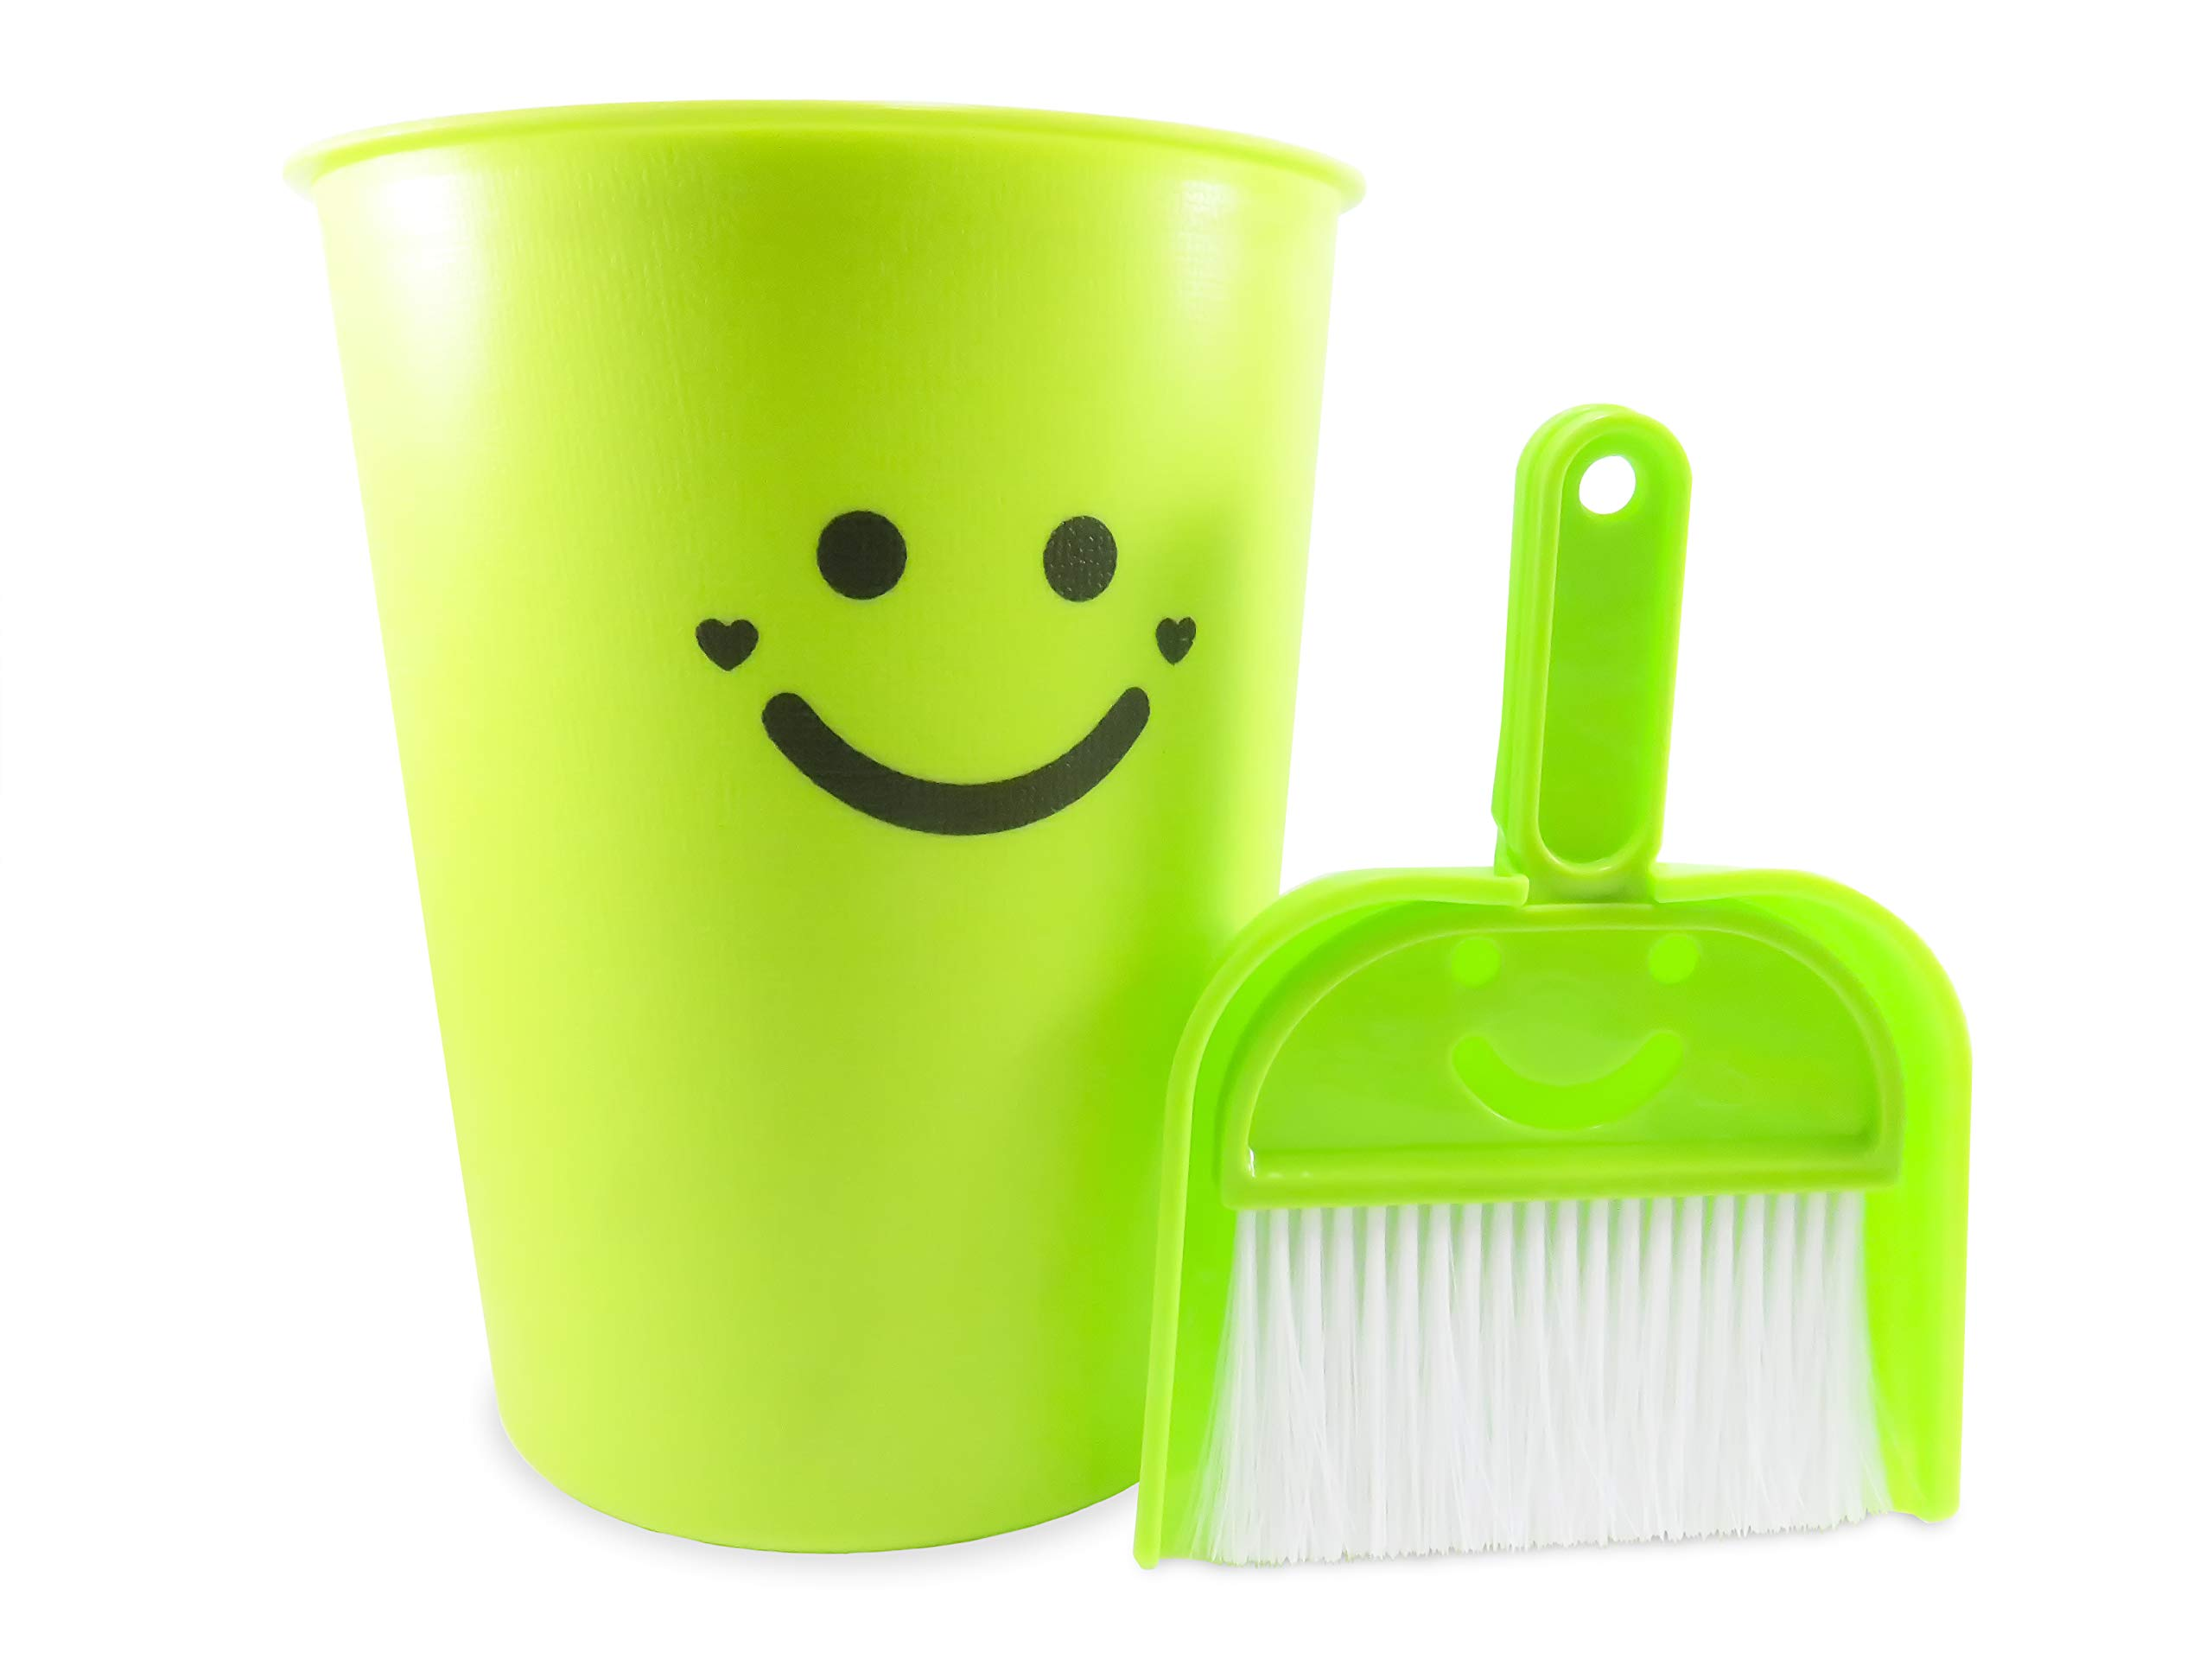 Neon Green Wastebasket Plastic with Dustpan and Brush 1.5 Gallon 9.75 Inches Tall - The Happiest Wastebasket and Dustpan on Earth (3 Piece Set)